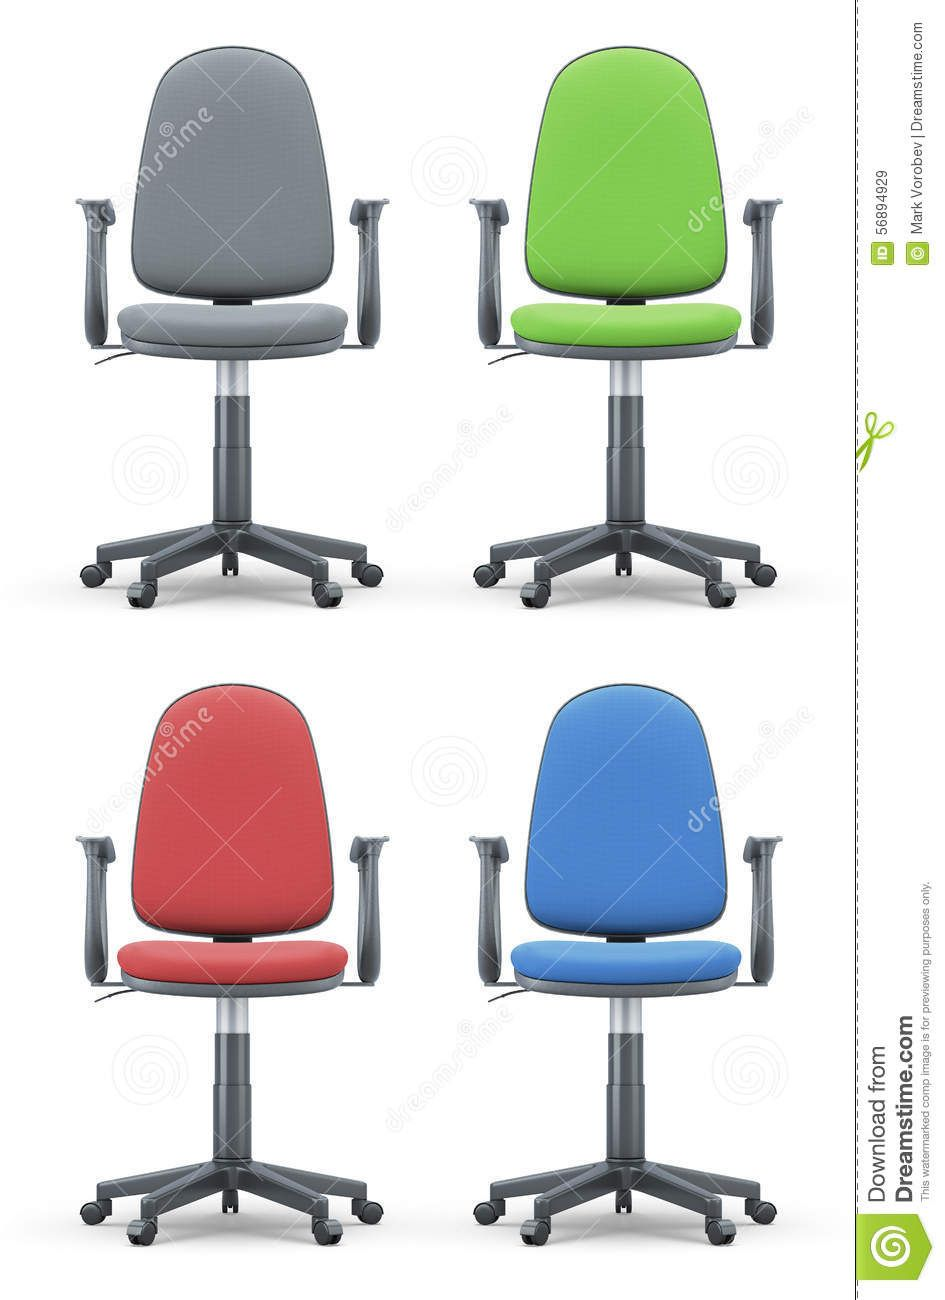 How To Adjust Office Chair Pin By Prtha Lastnight On Room Ideas Low Budget Home Office